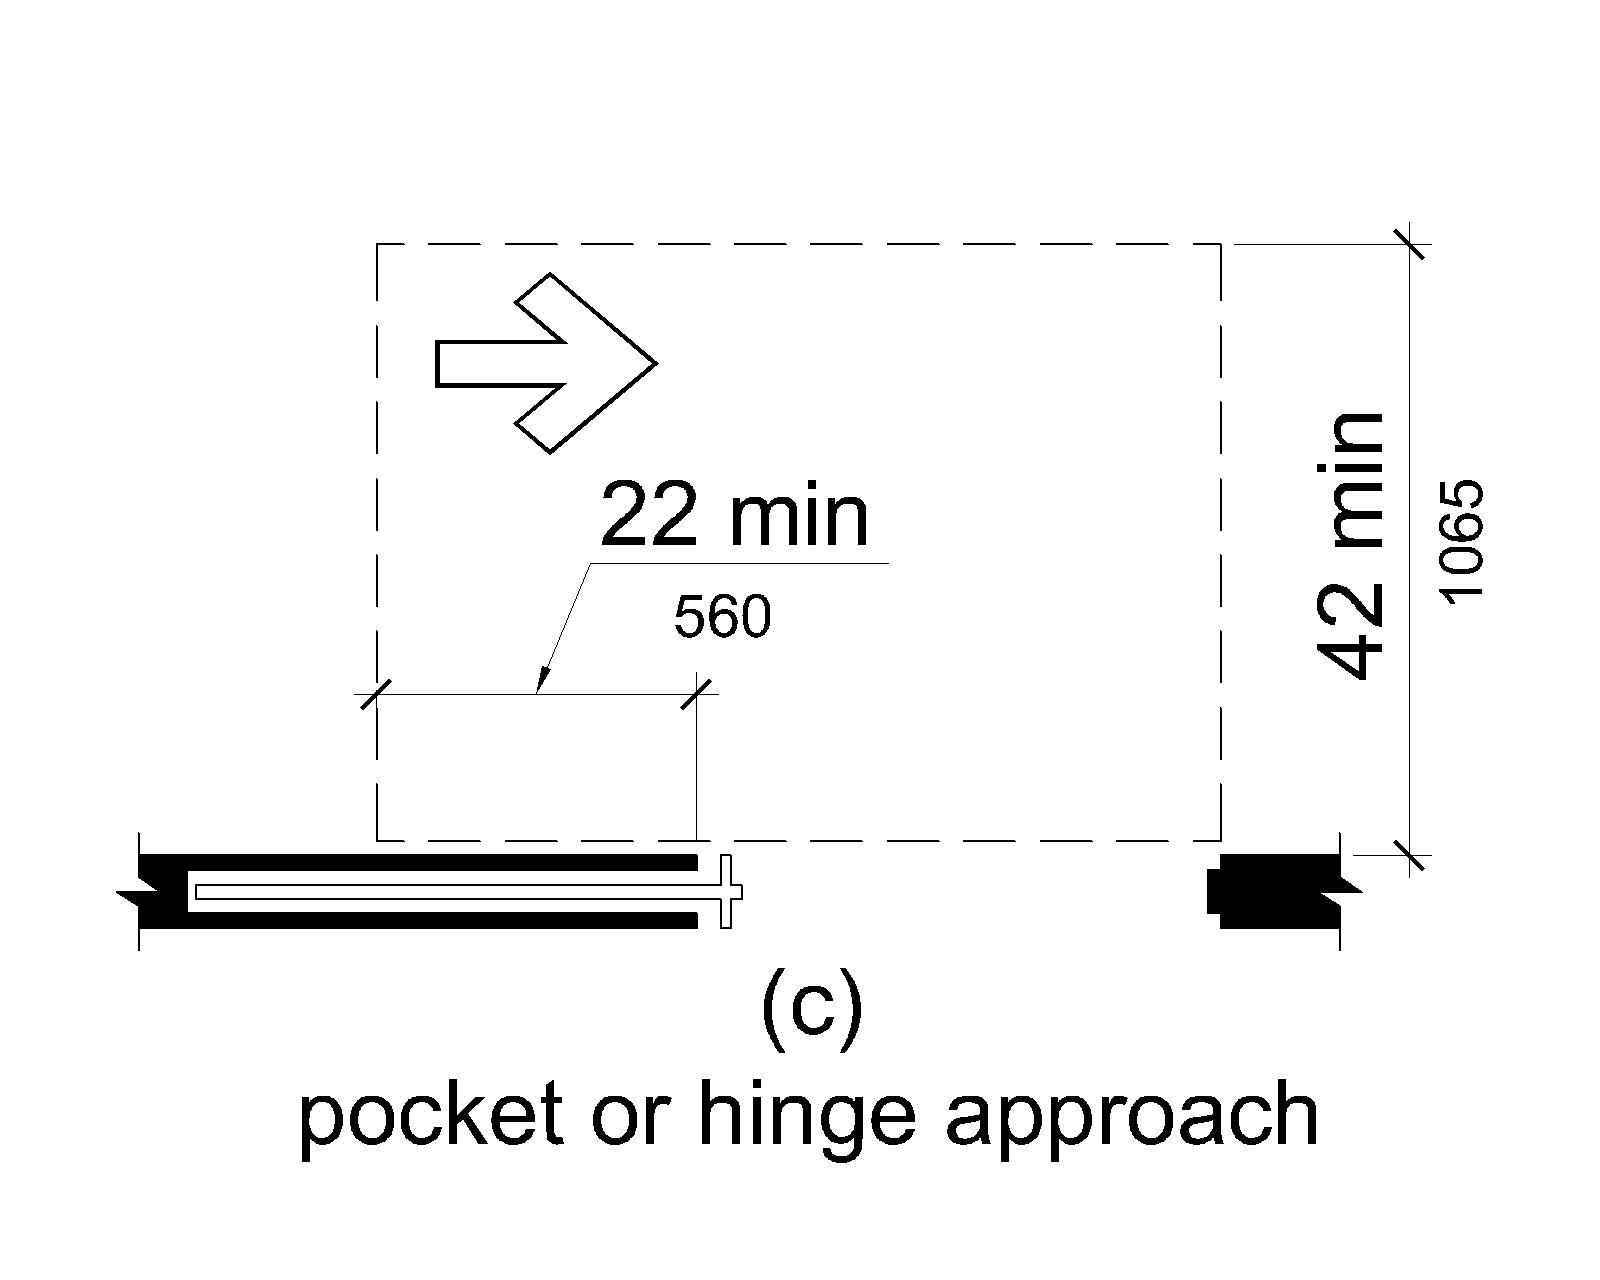 Figure (c) shows a pocket or hinge approach. Maneuvering clearance extends 22 inches (560 mm) from the pocket or hinge side and is 42 inches (1065 mm) minimum perpendicular to the doorway.